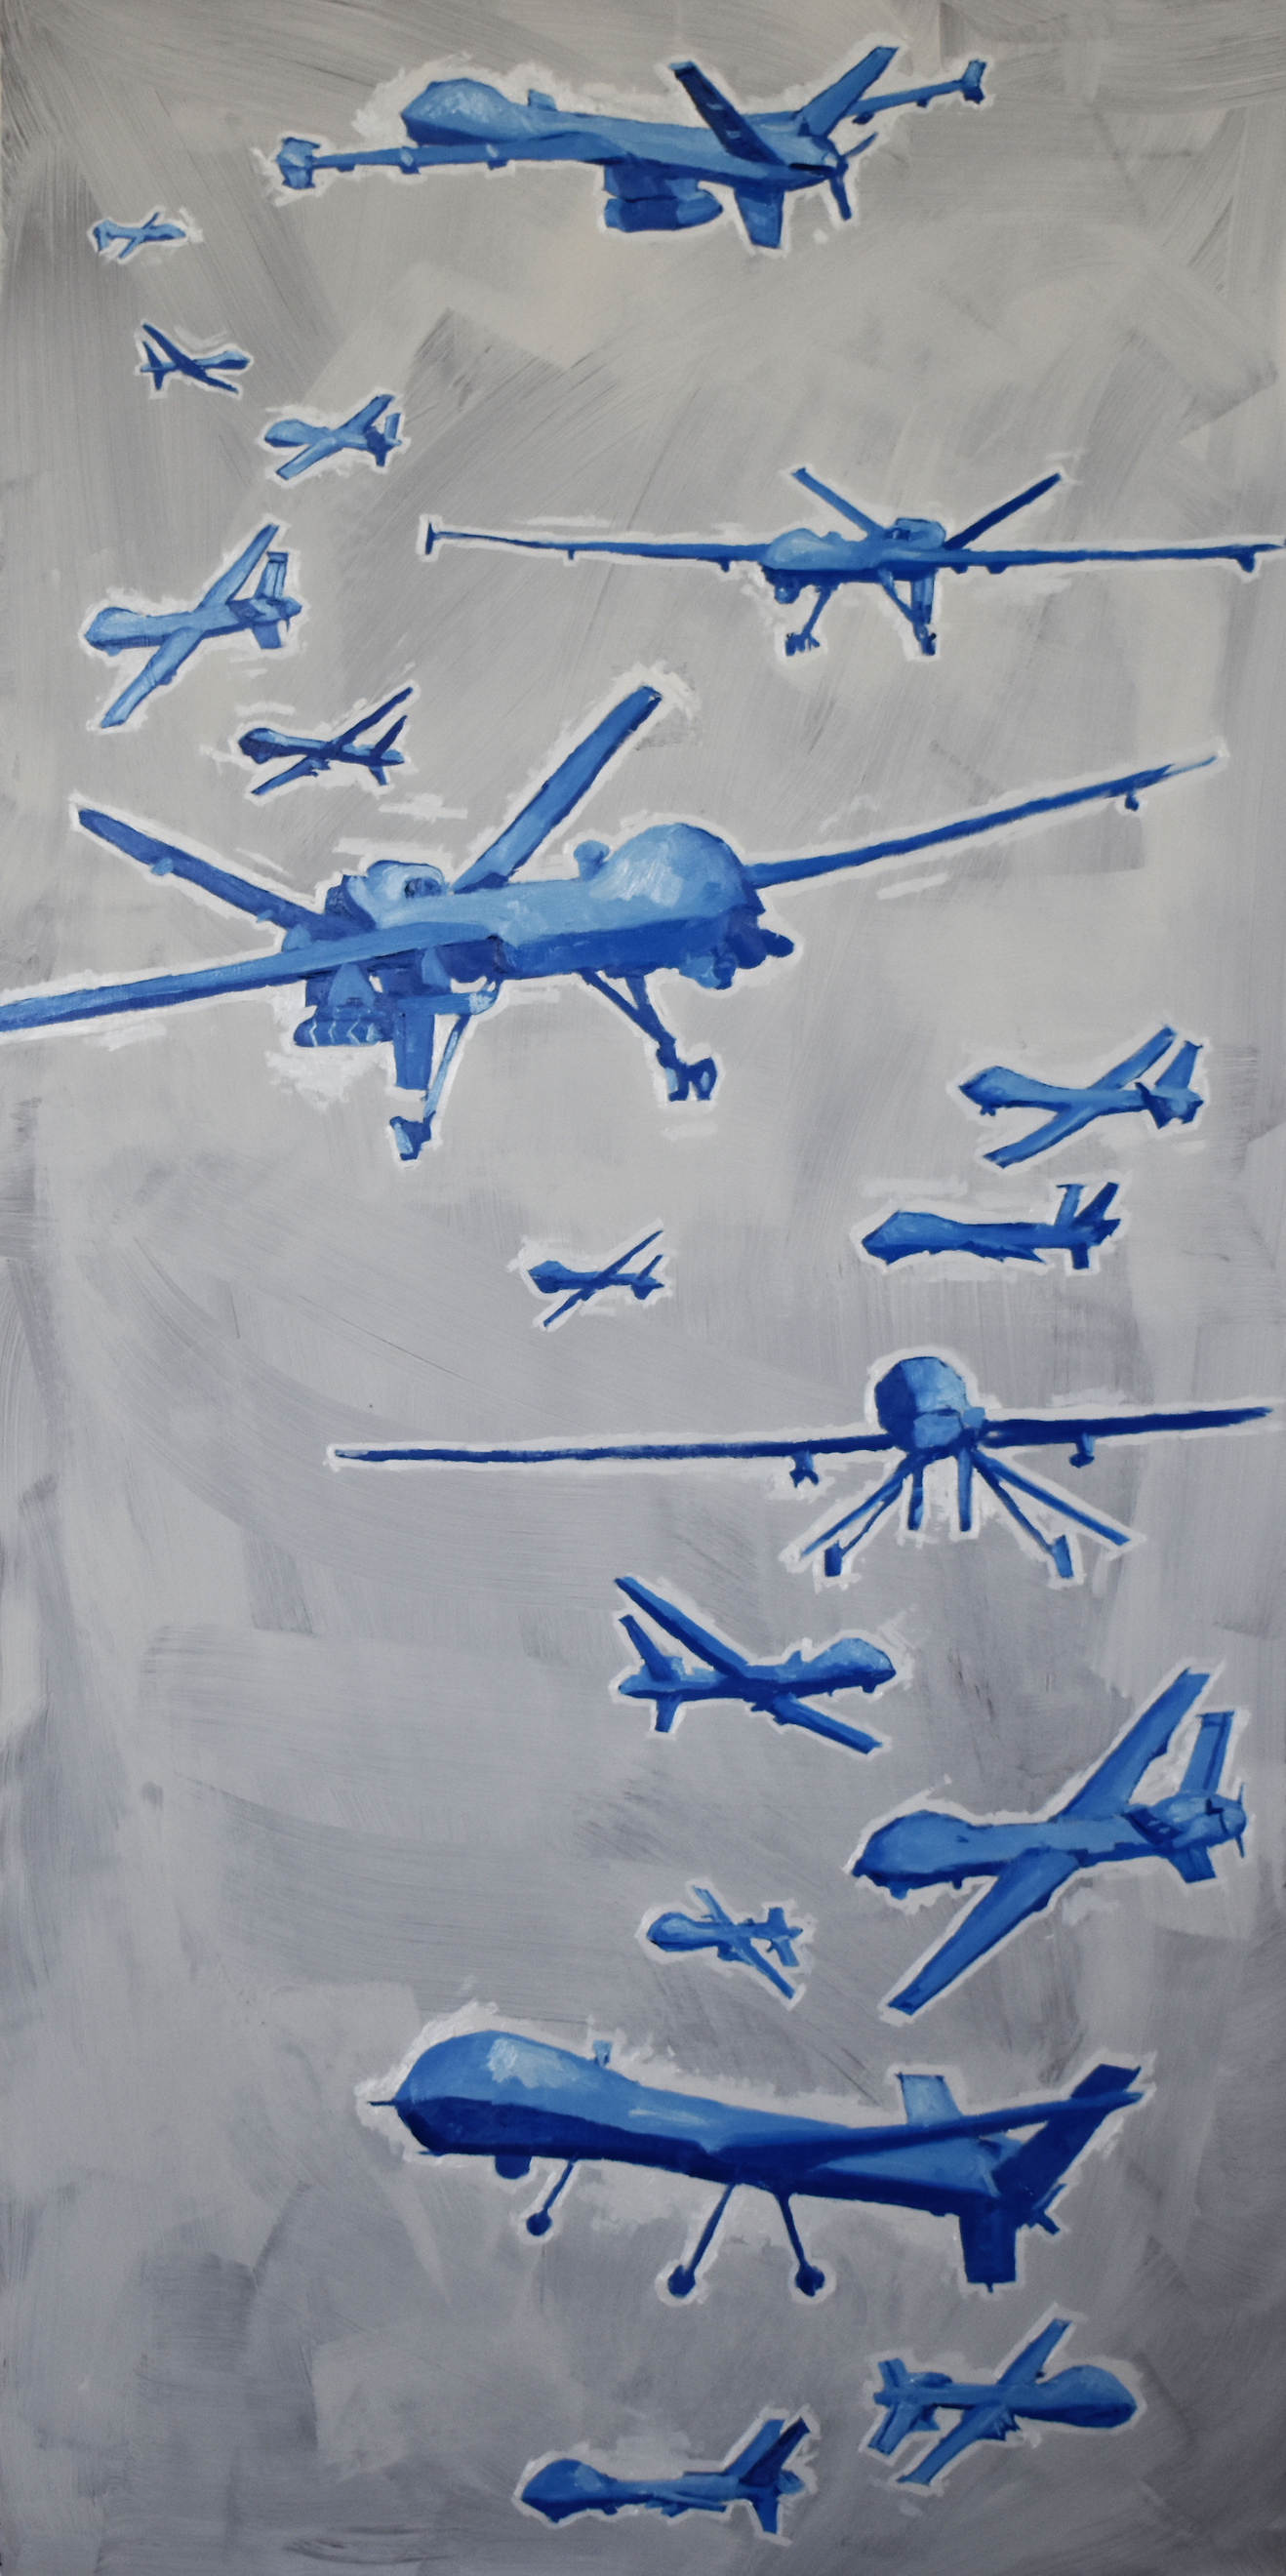 painting of blue airplanes